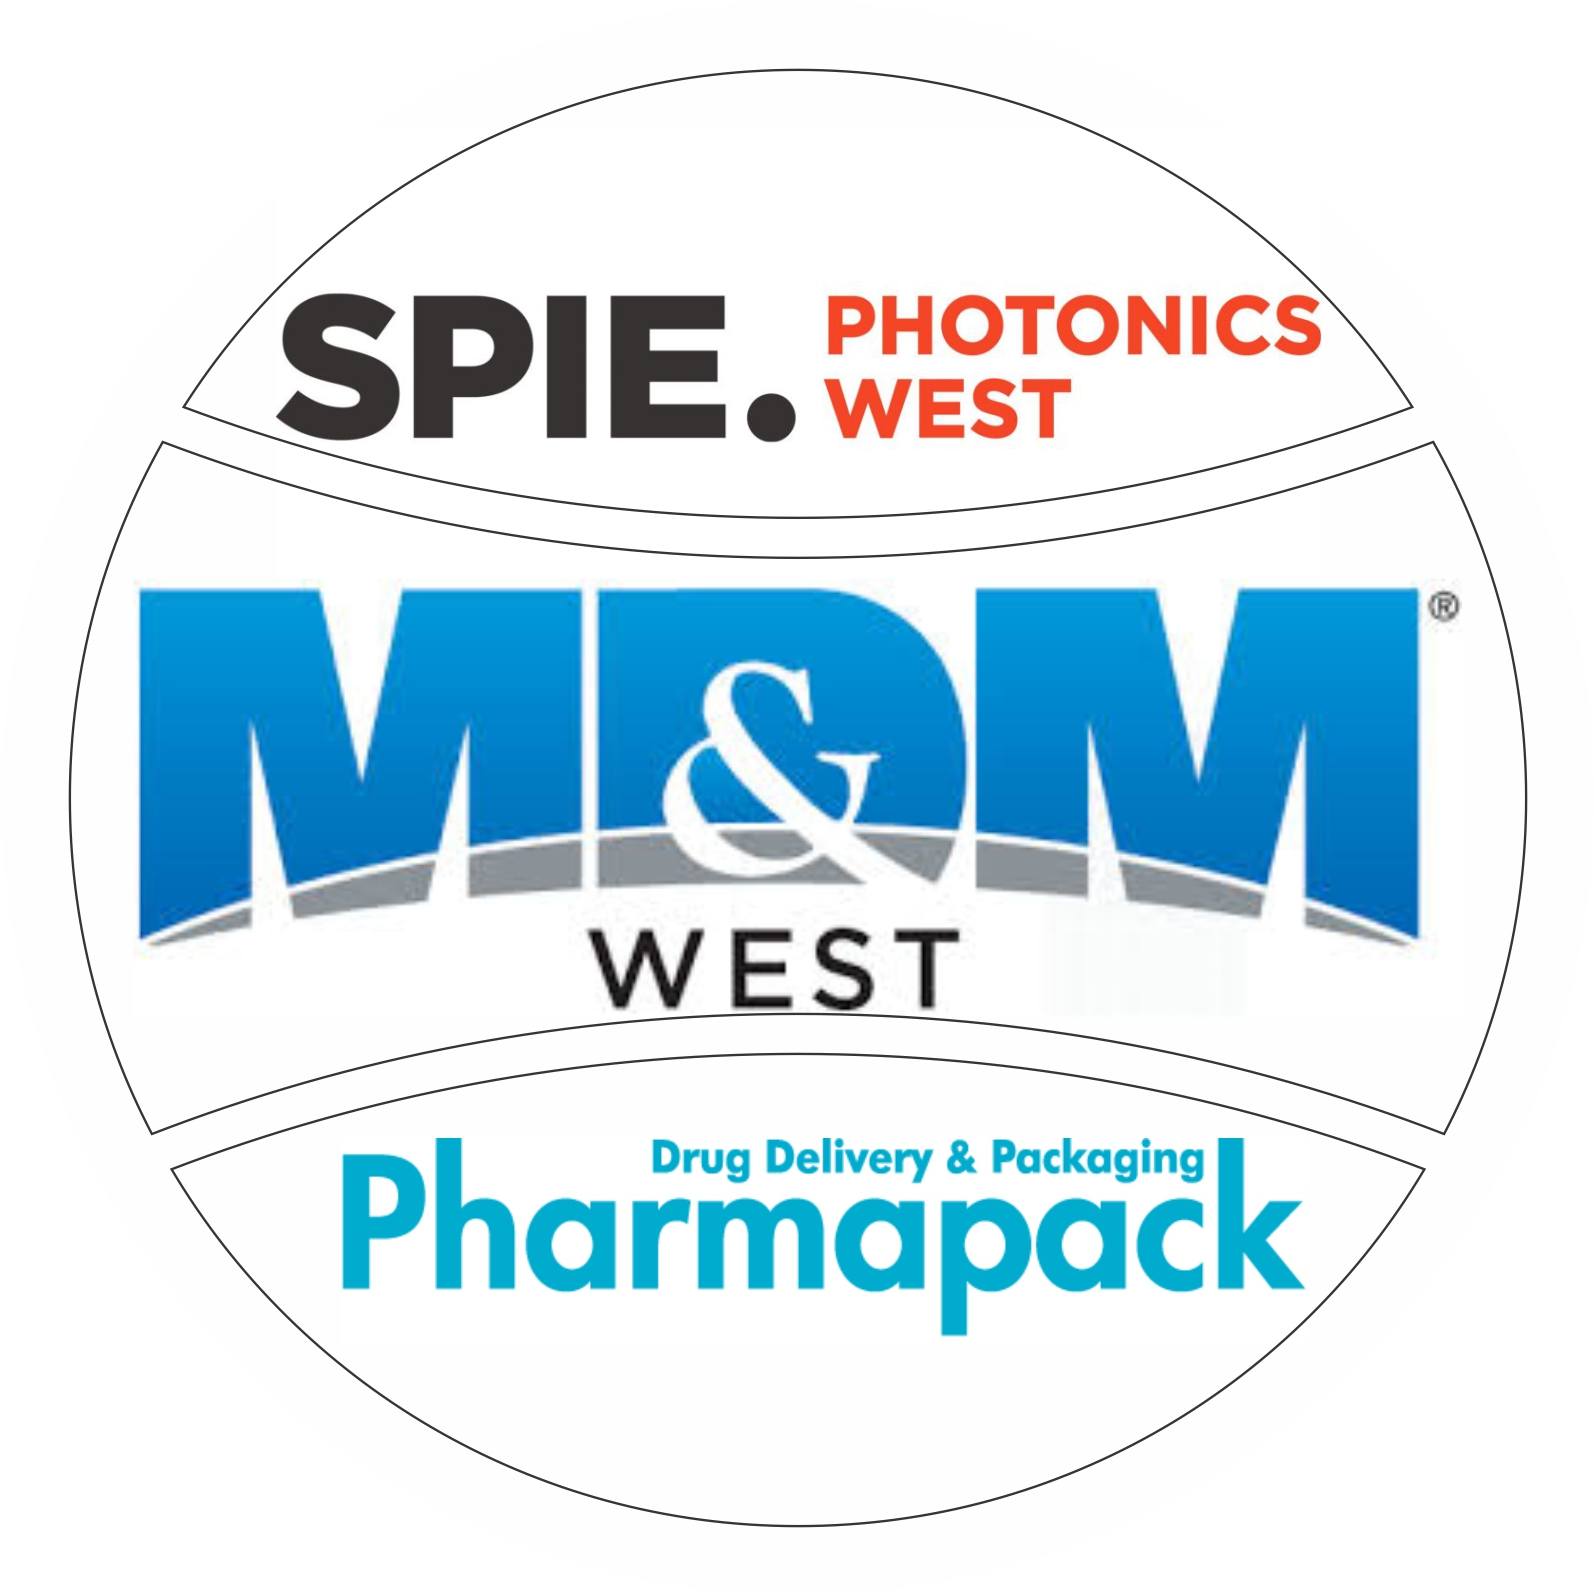 Photonics West – MDM West – Pharmapack